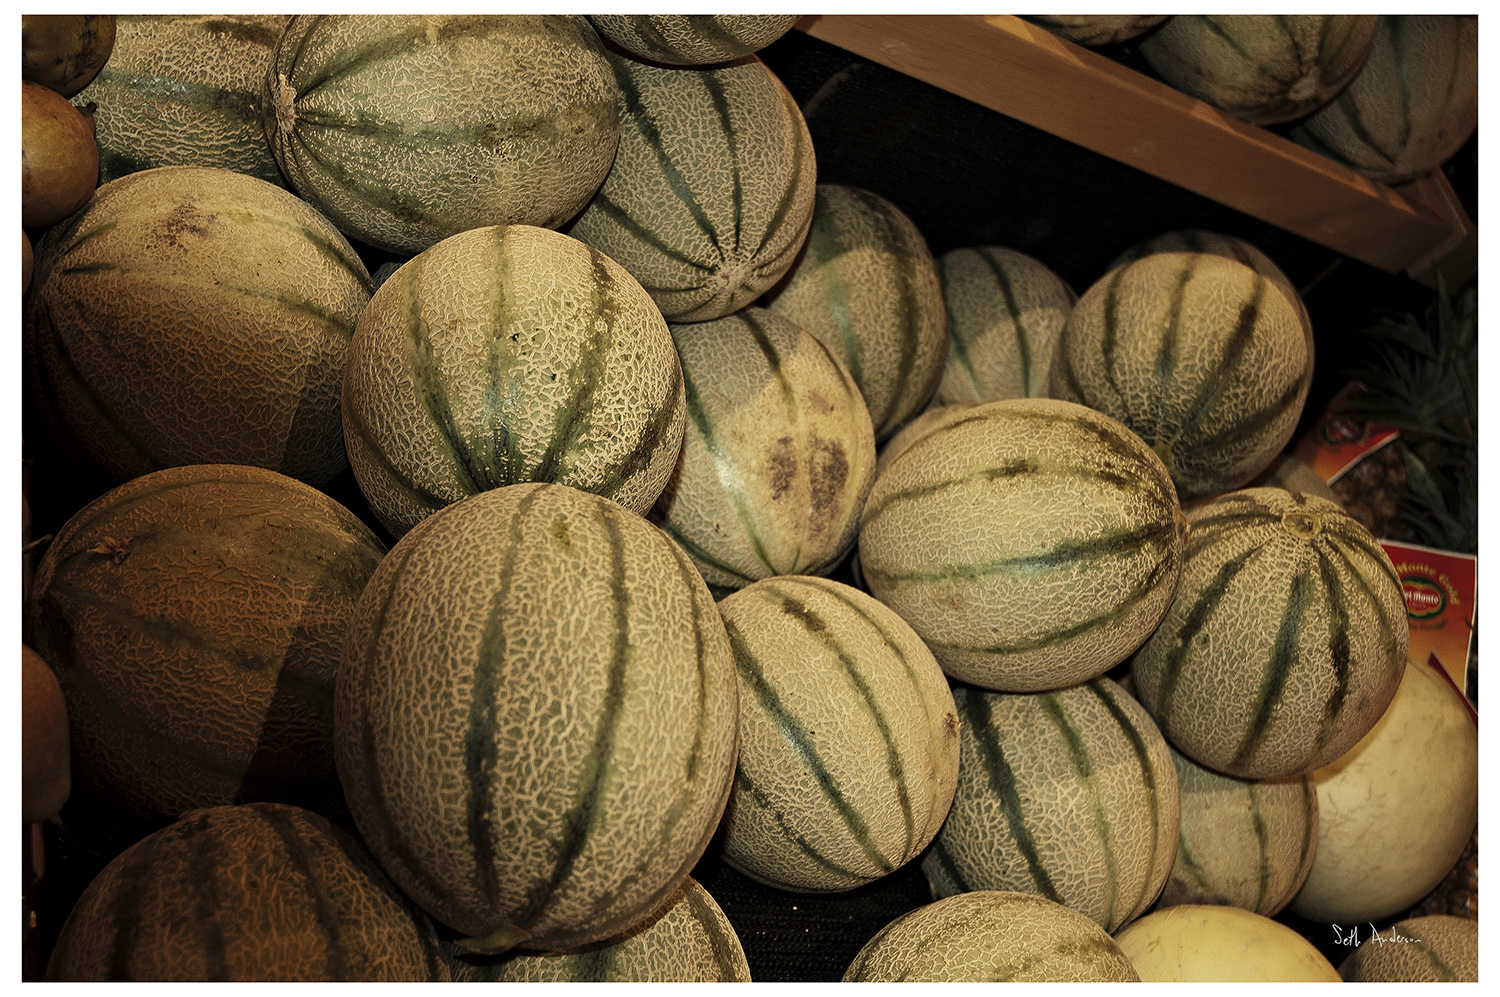 How About Those Melons